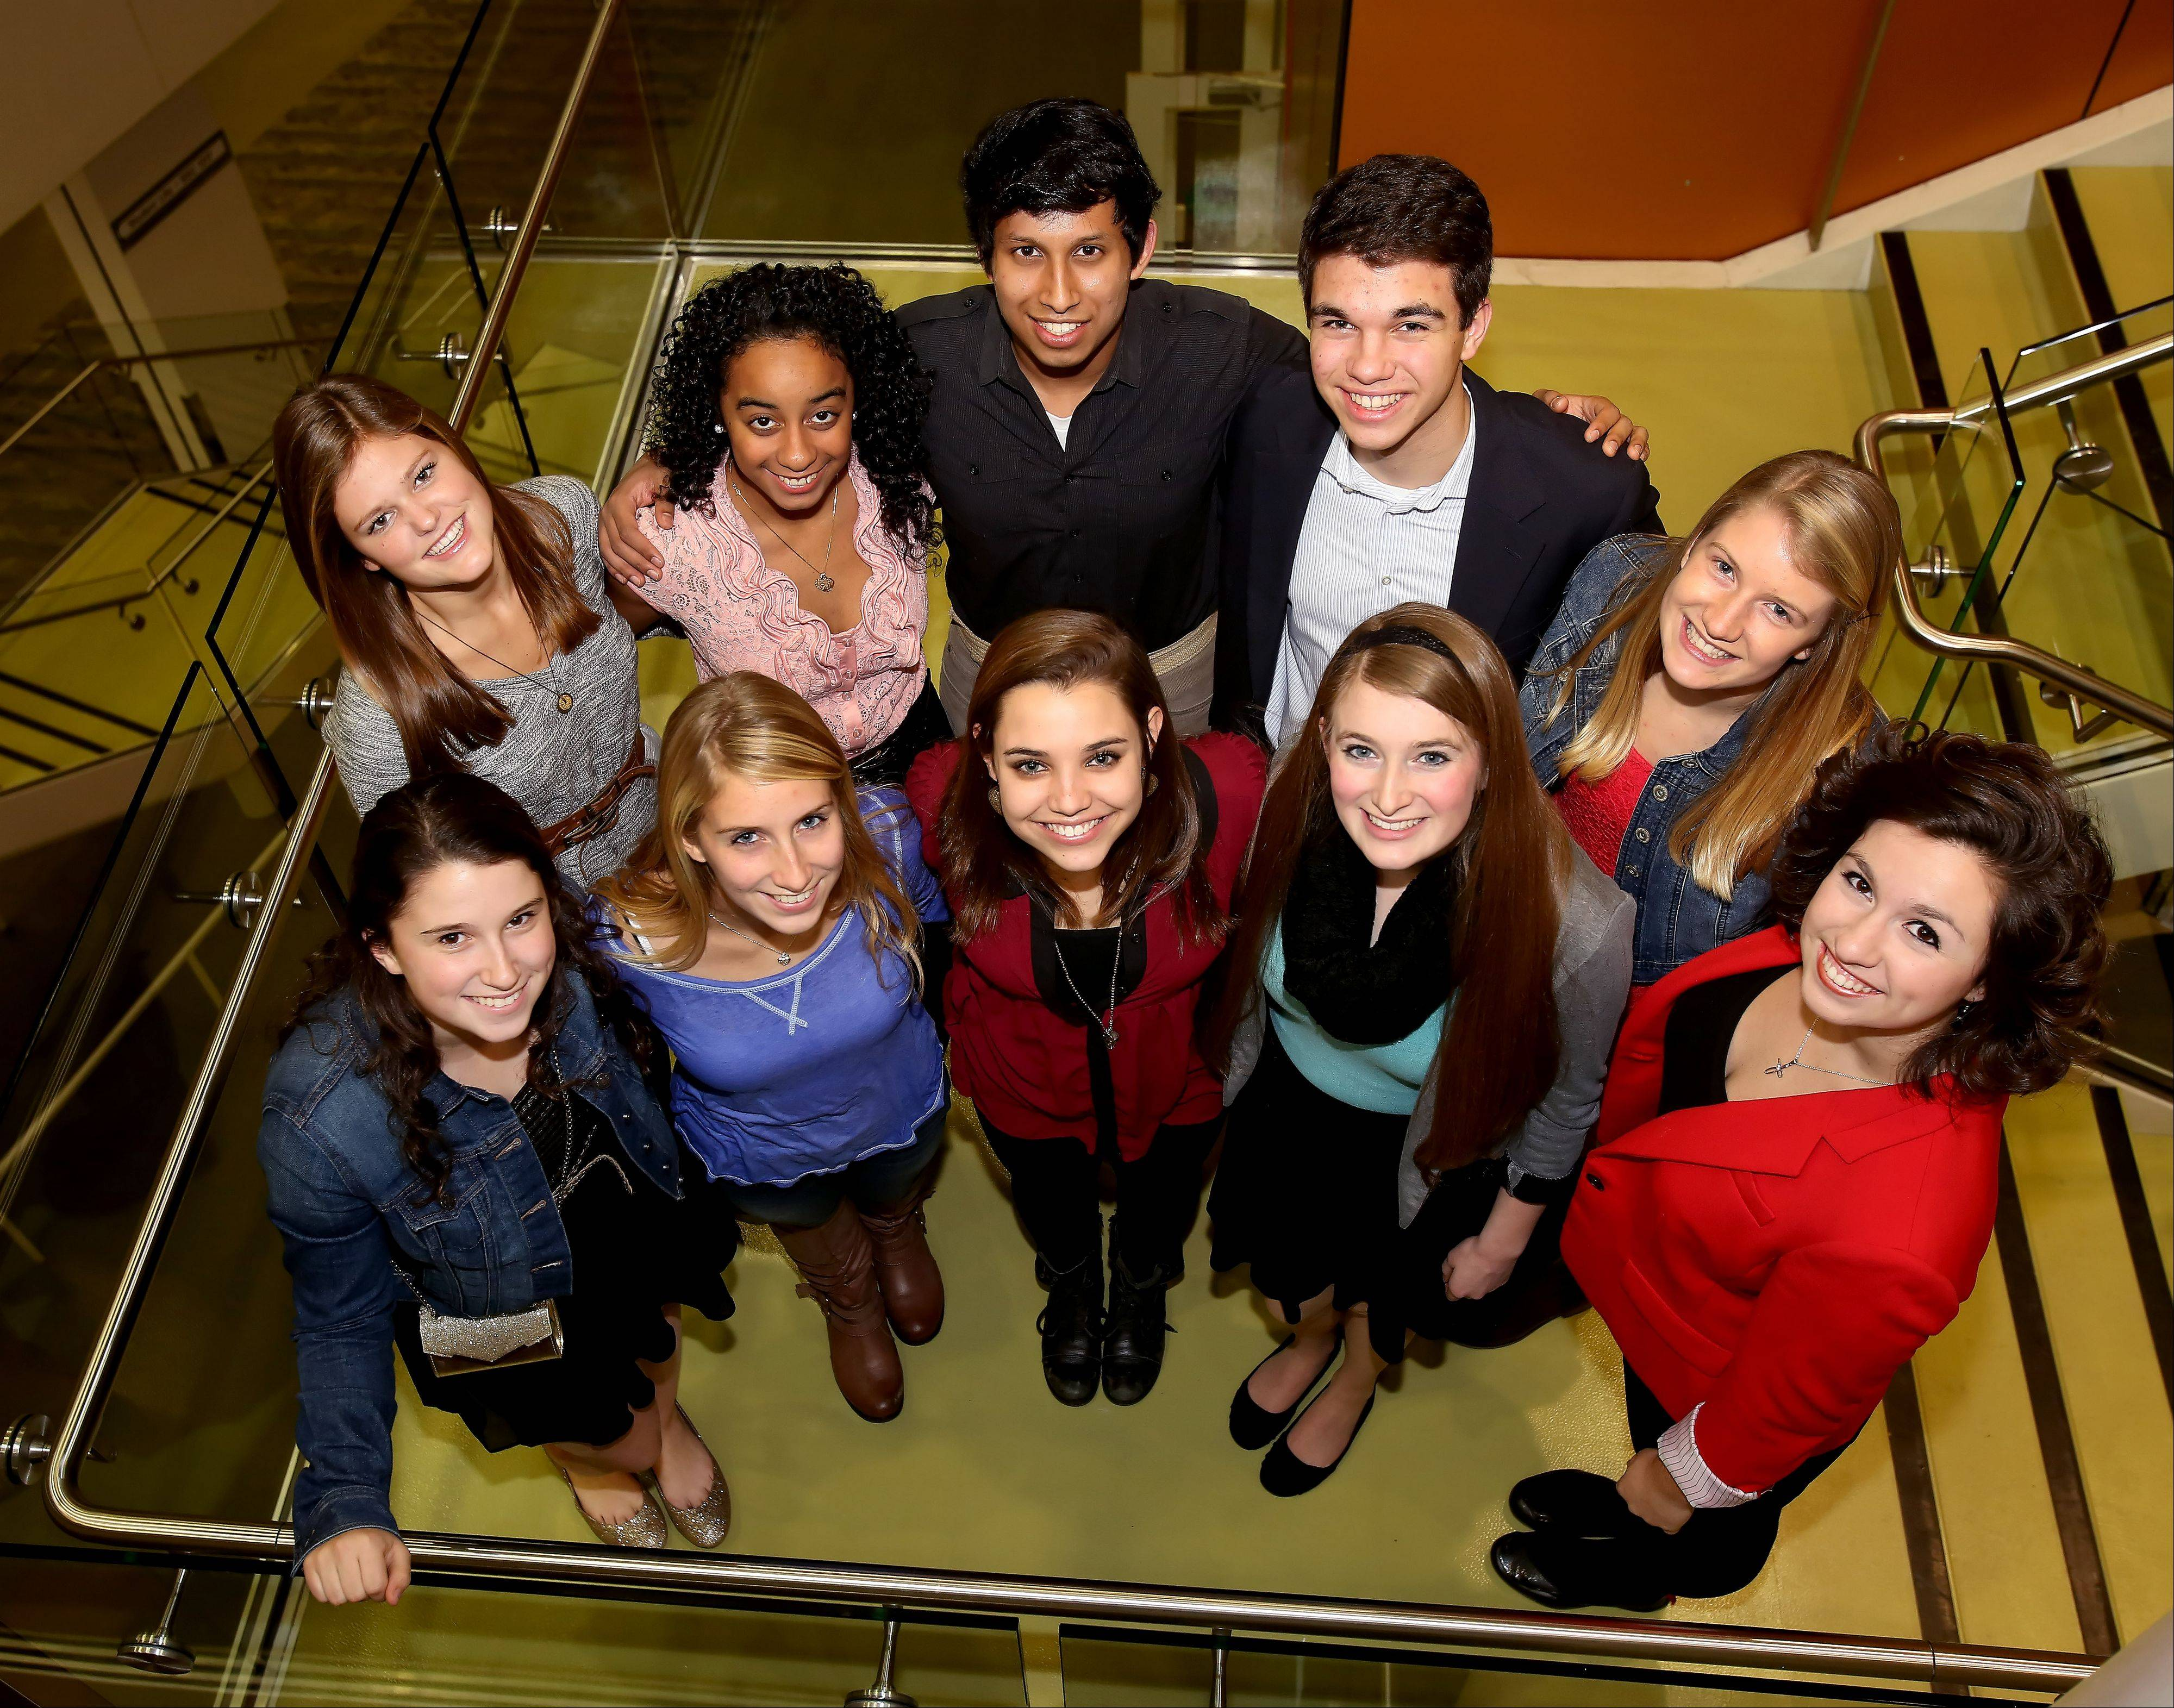 The 10 members of the 2013-14 Daily Herald DuPage County Leadership Team meet at the College of DuPage for a group photo. Back row, from left: Katie Mann, Wheaton Academy; Alissa Whyte, Fenton High School; Silas Ferrao, Naperville Central; Austin Hansen, Naperville North; Maria McDaniel, Naperville North. Front row, from left: Mary Doro, Downers Grove North; Aeriel Euhus, Wheaton North; Meg Maloney, Glenbard West; Sienna Crosby, Glenbard North and Maggie O'Brien, Addison Trail.